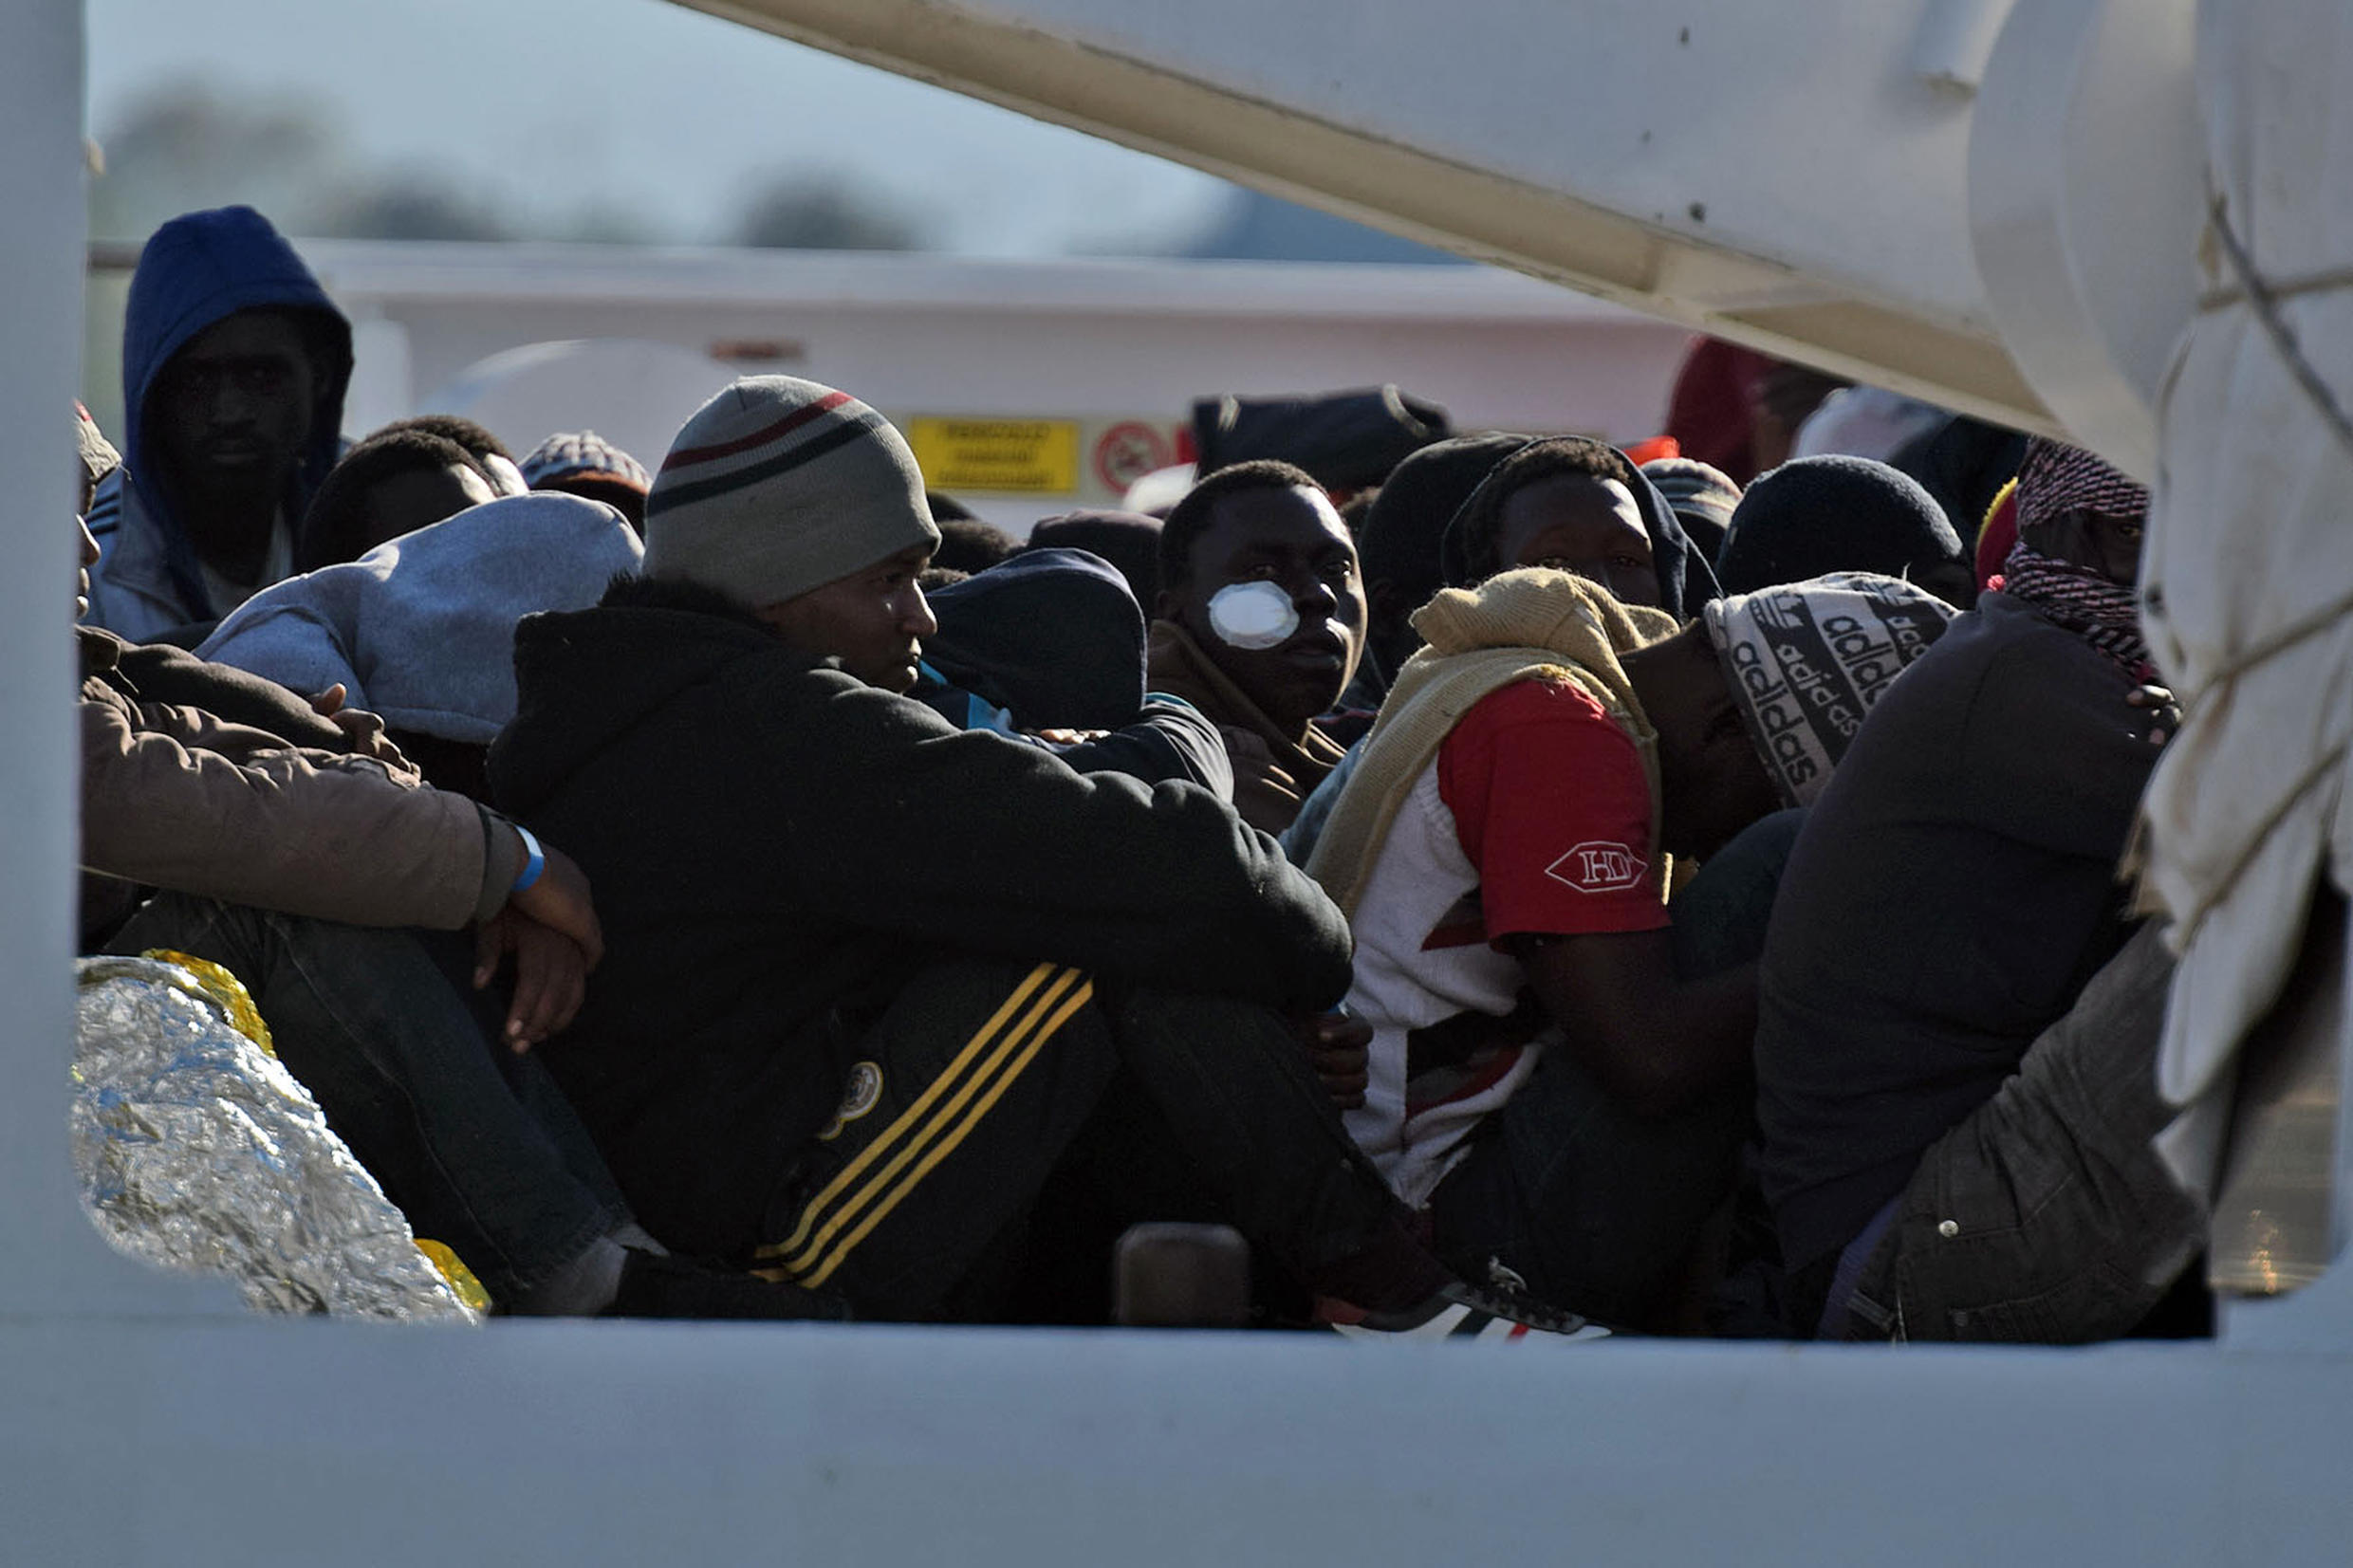 Survivors of a shipwreck in the Mediterranean on 16 April